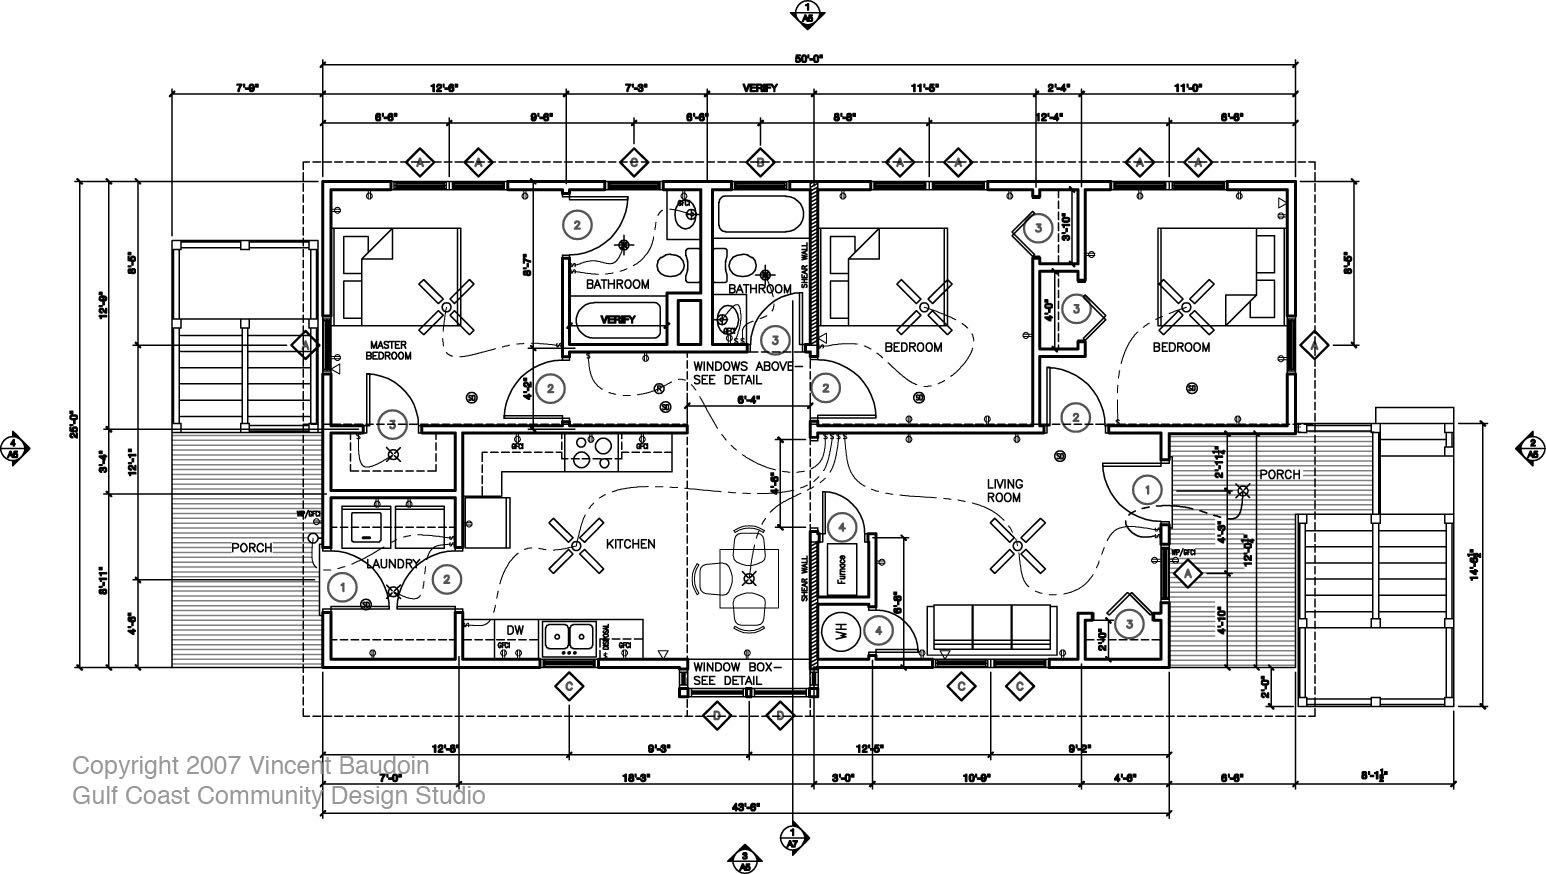 House building plans house ideals for House building blueprints